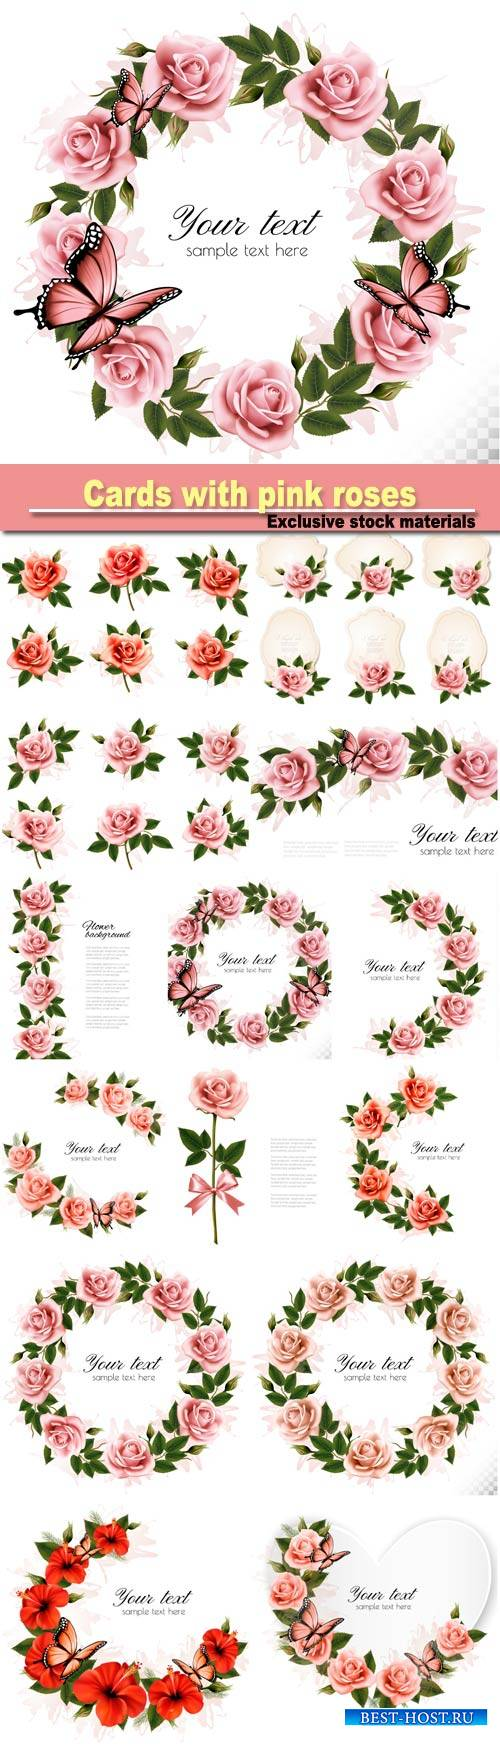 Collection of retro greeting cards with pink roses